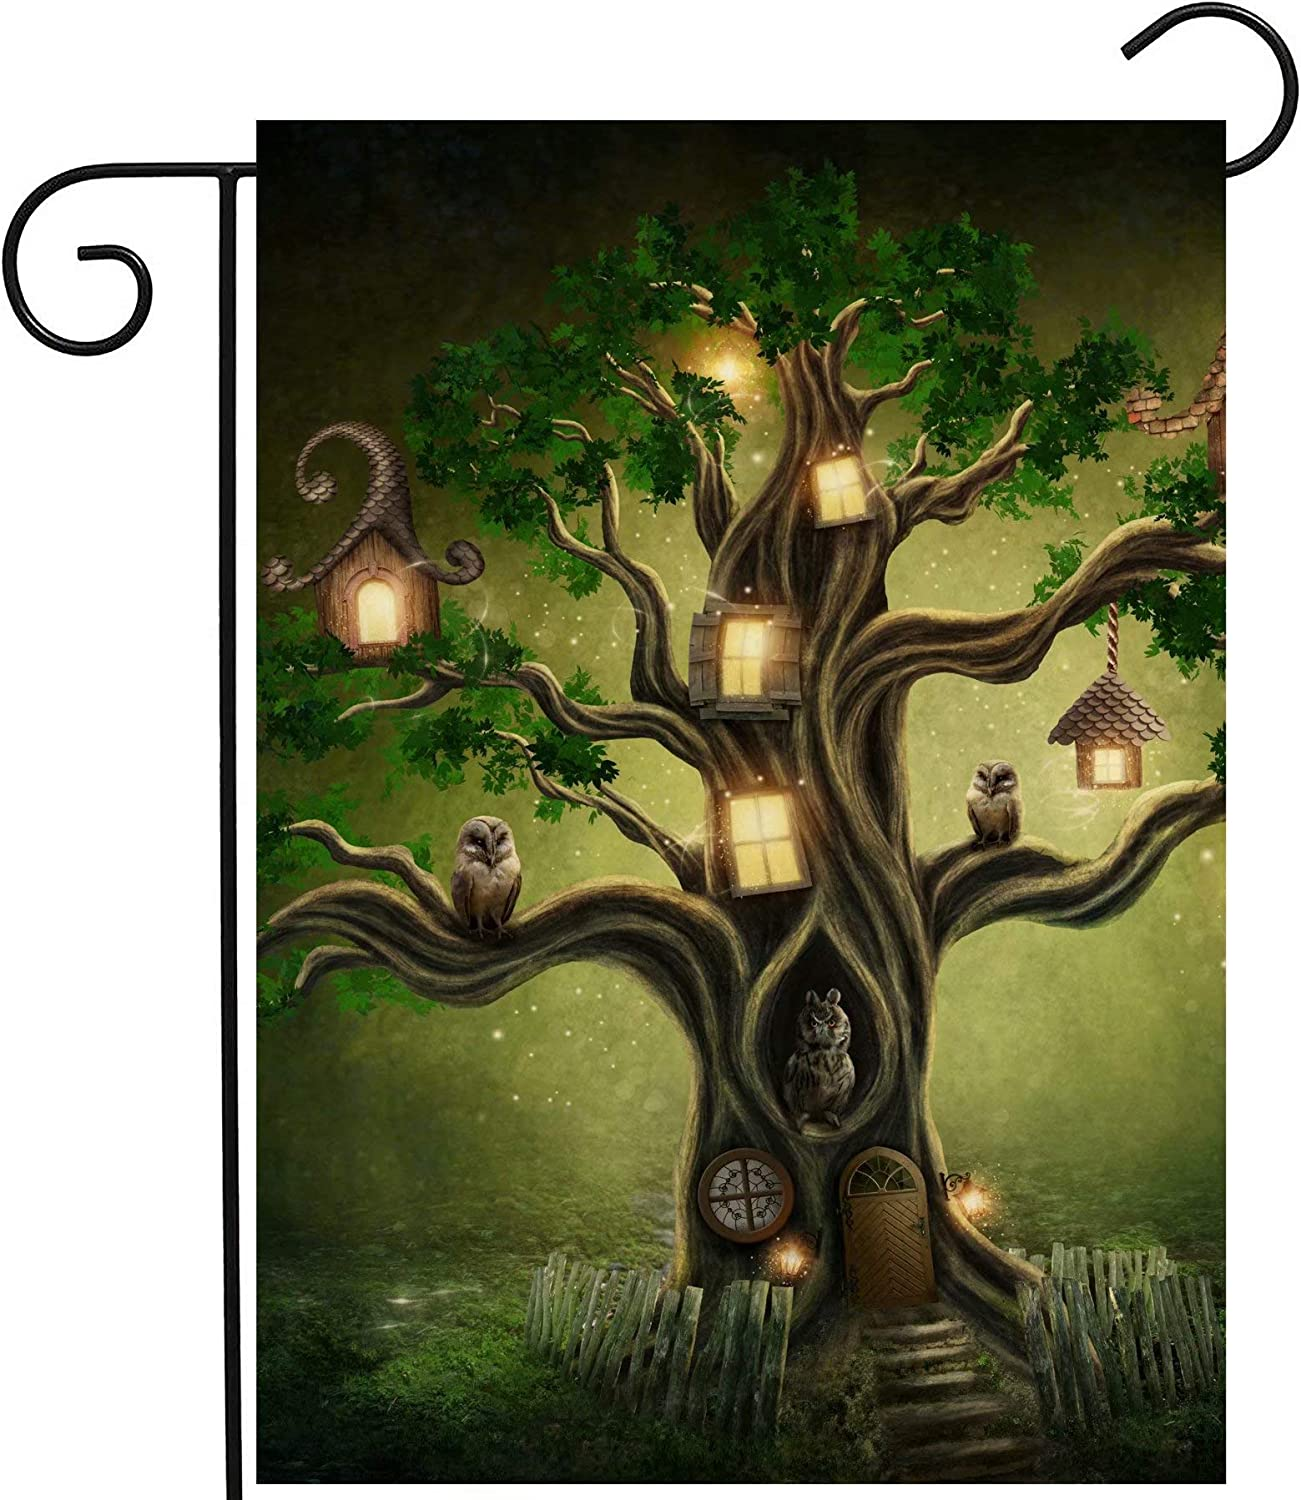 """ShineSnow Mysterious Tree Birds Owls Lantern House in Forest Fantastic Fairy Garden Yard Flag 12""""x 18"""" Double Sided, Polyester Welcome House Flag Banners for Patio Lawn Outdoor Home Decor"""